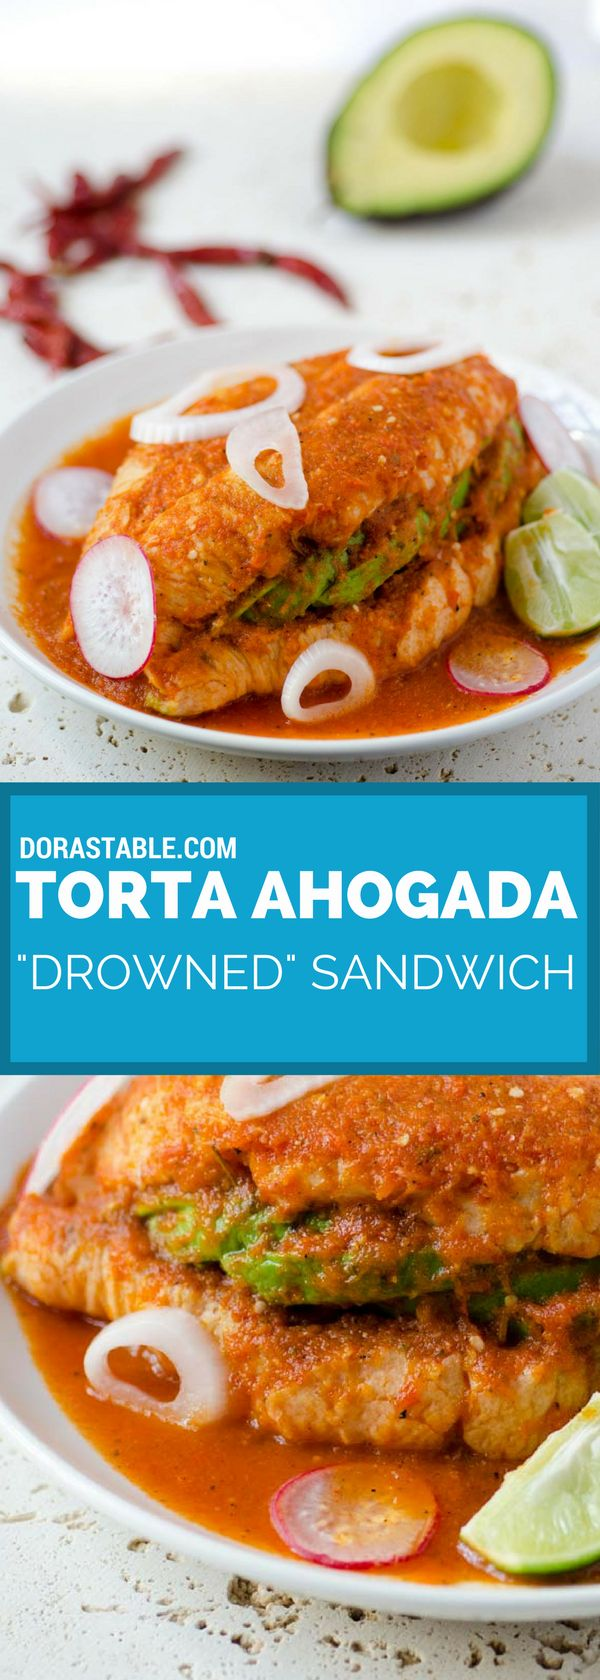 """This Torta ahogada or Mexican """"drowned"""" sandwich is a crusty bread torta filled with refried beans and avocado, and drowned in a spicy chile de arbol salsa. Recipe from Vegan Mexico Cookbook by Jason Wyrick. veganmexican 